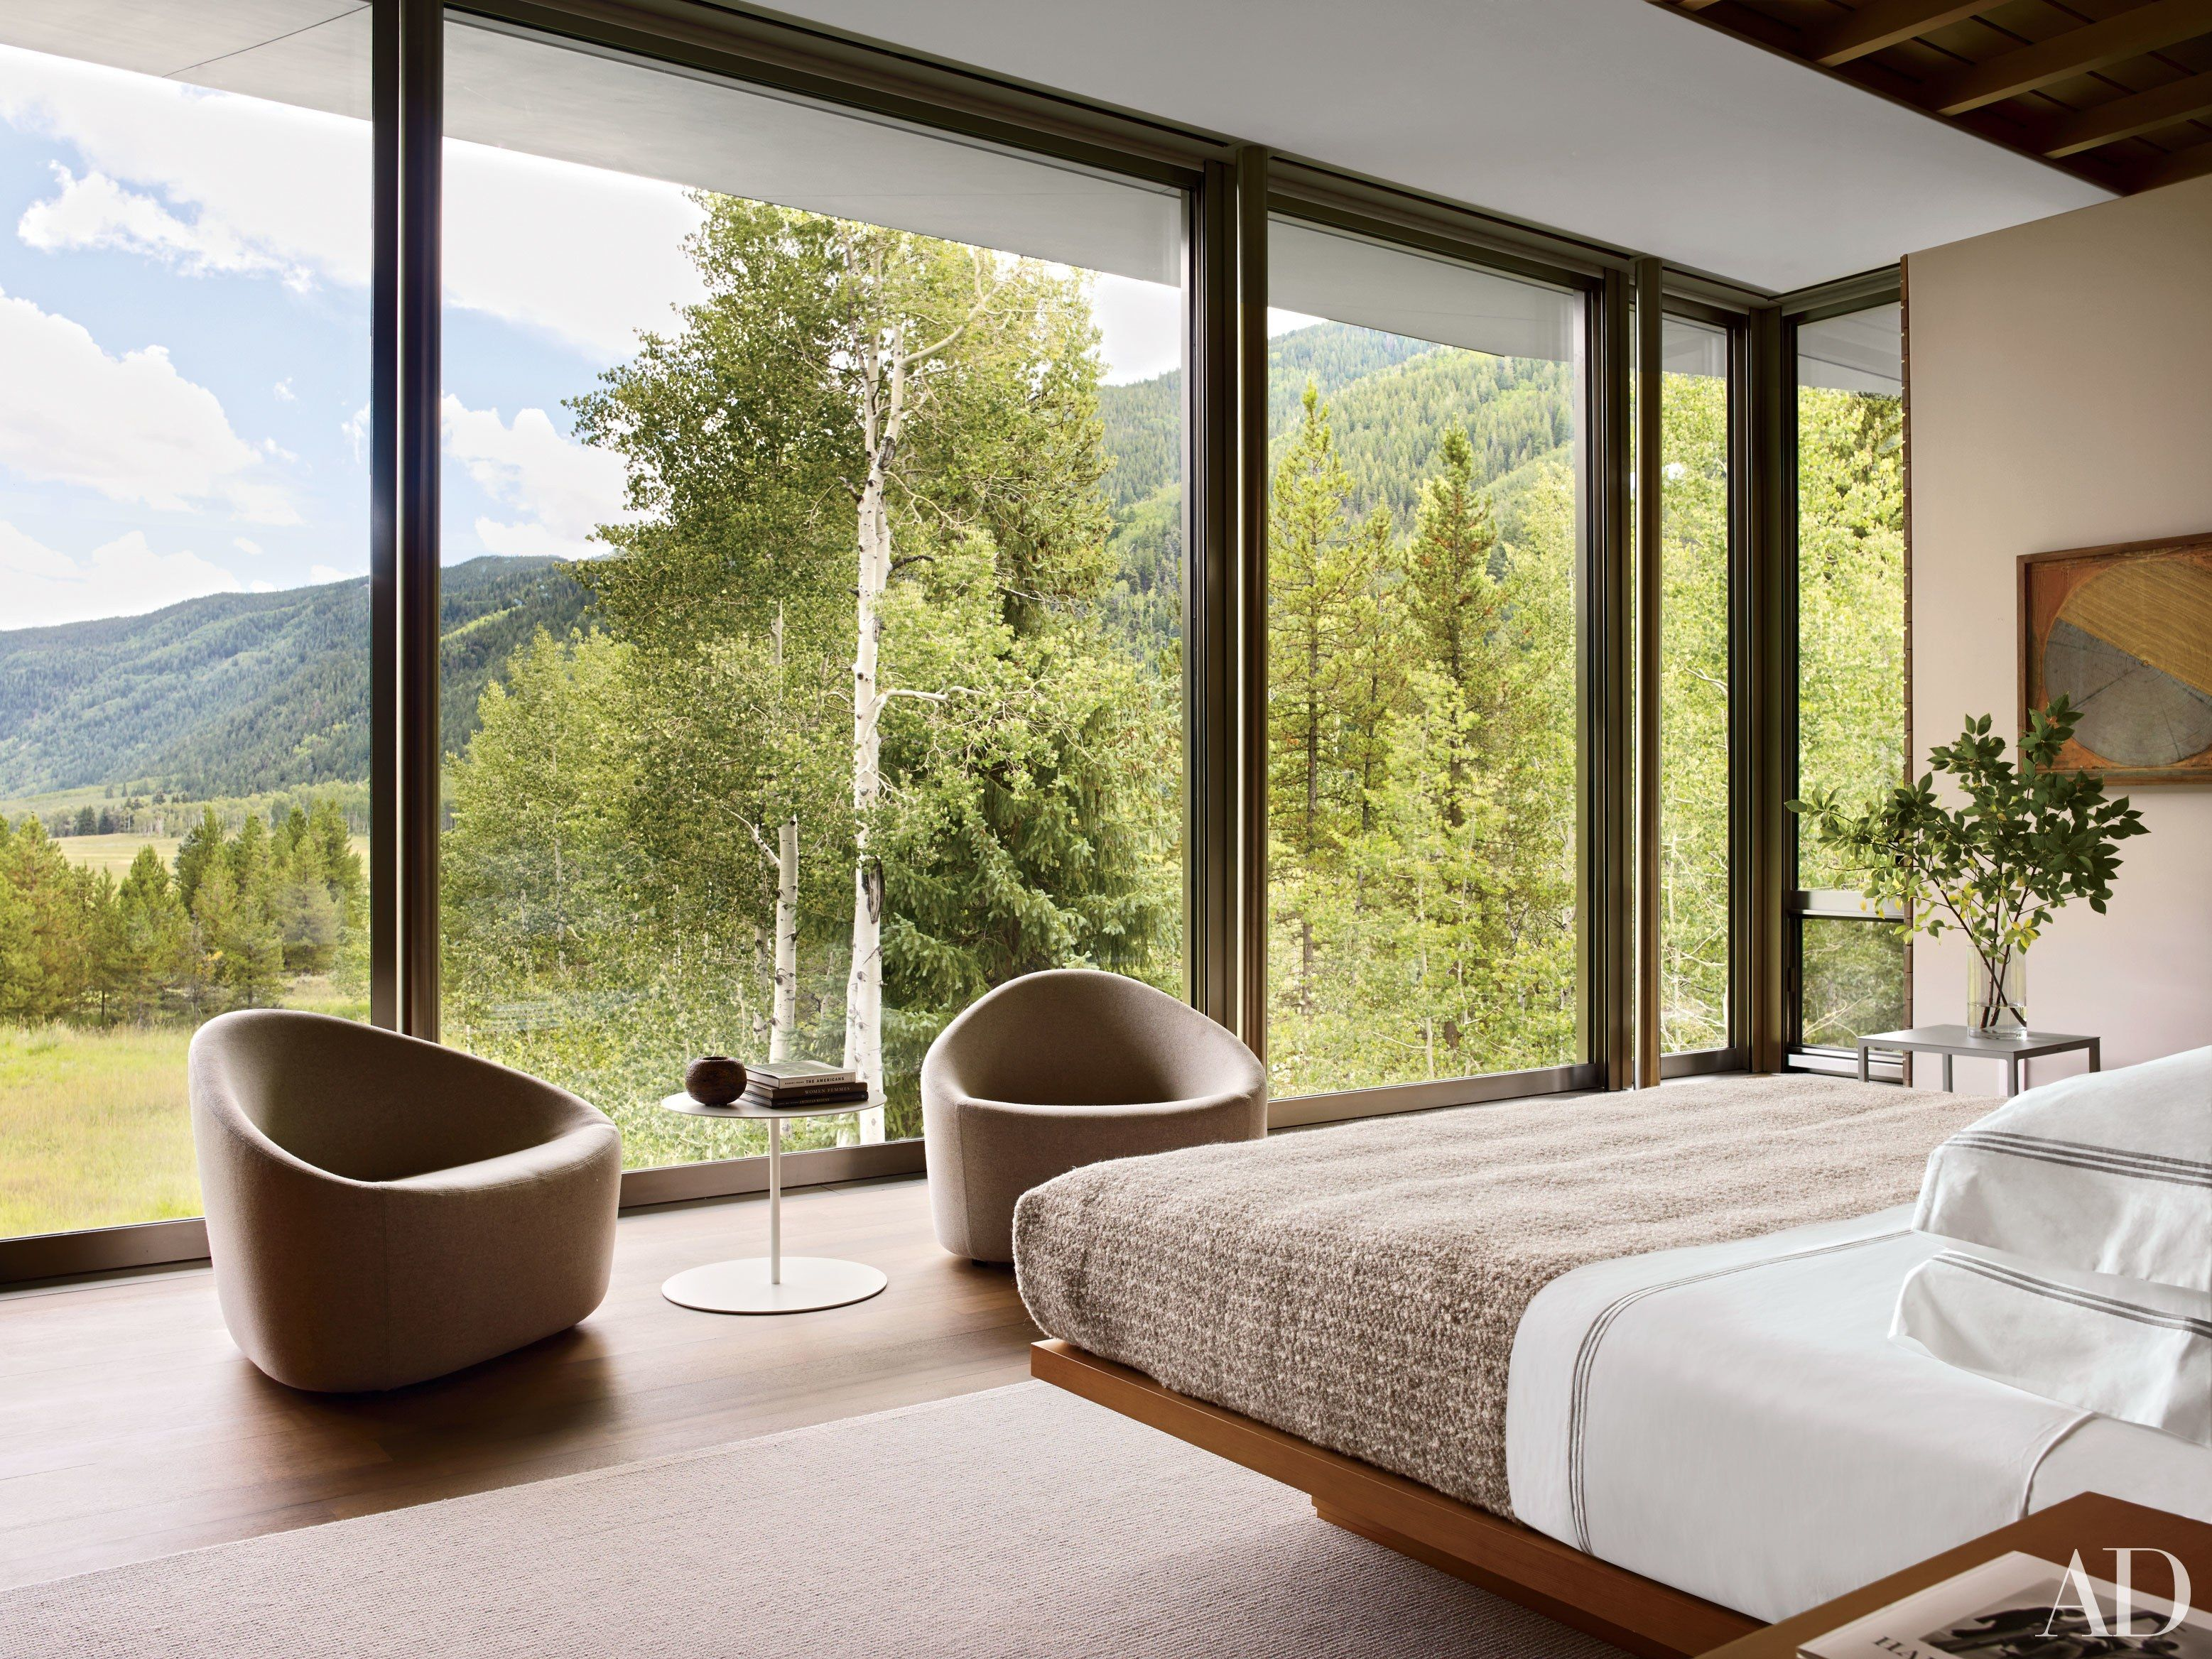 Spectacular views and high design seamlessly come